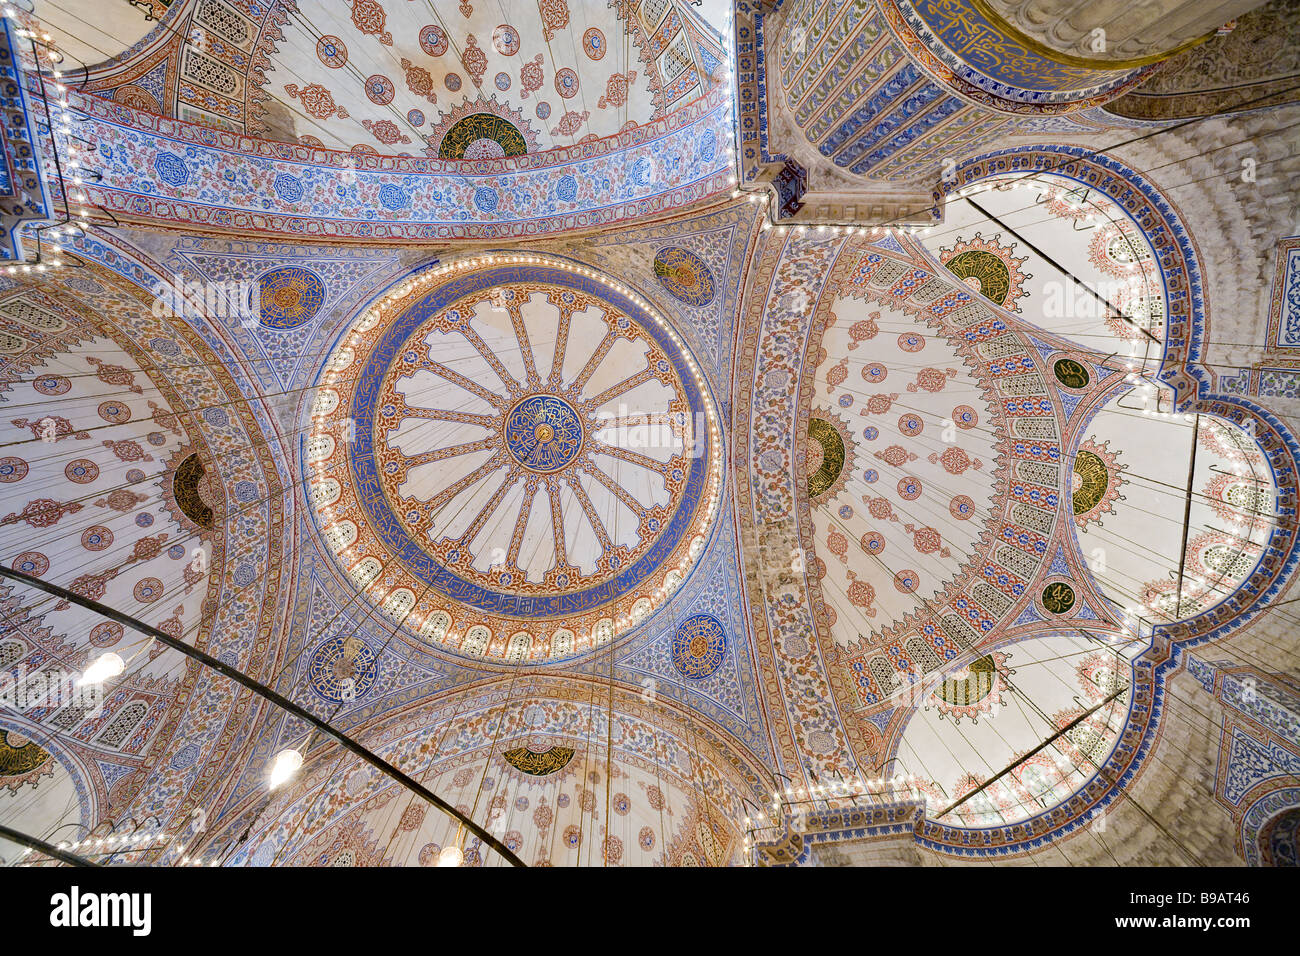 Complexity in Colour. The highly decorated ceramic covered ceiling of the Blue Mosque is full of light and color. - Stock Image